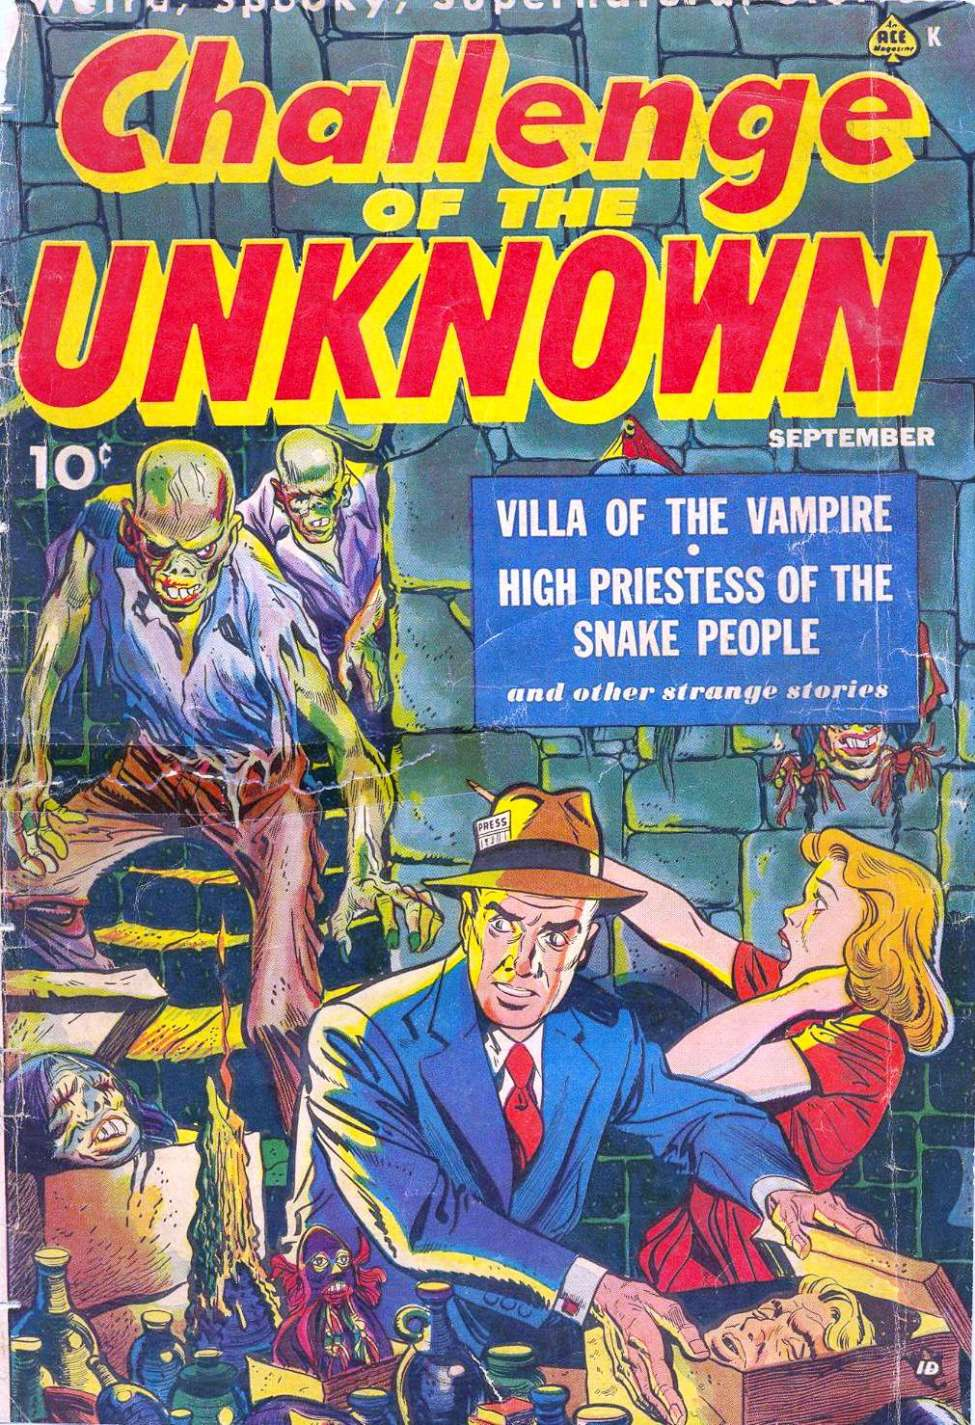 Comic Book Cover For Challenge of the Unknown #6